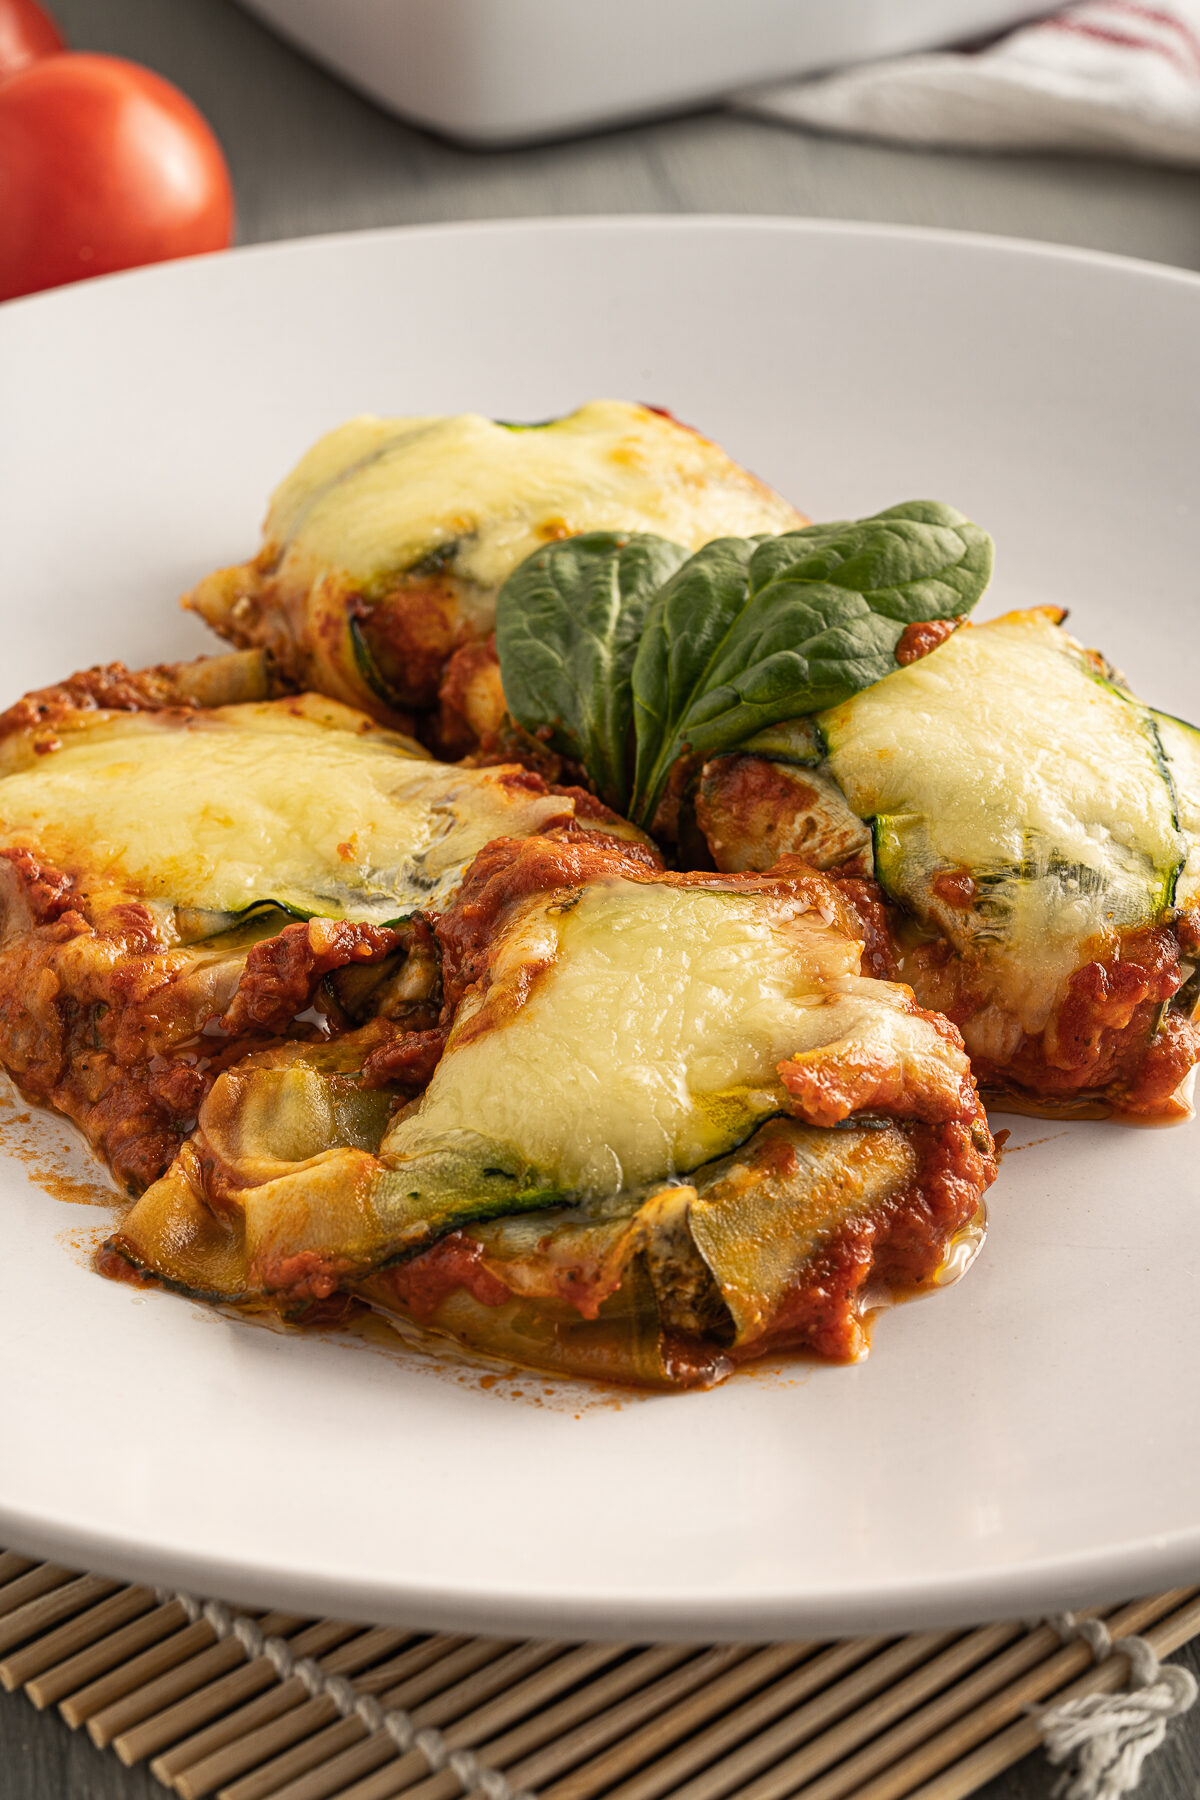 Zucchini ravioli is an easy to make Keto friendly family meal. Filled with cheese and spinach, it's a satisfying & tasty vegetarian dish!